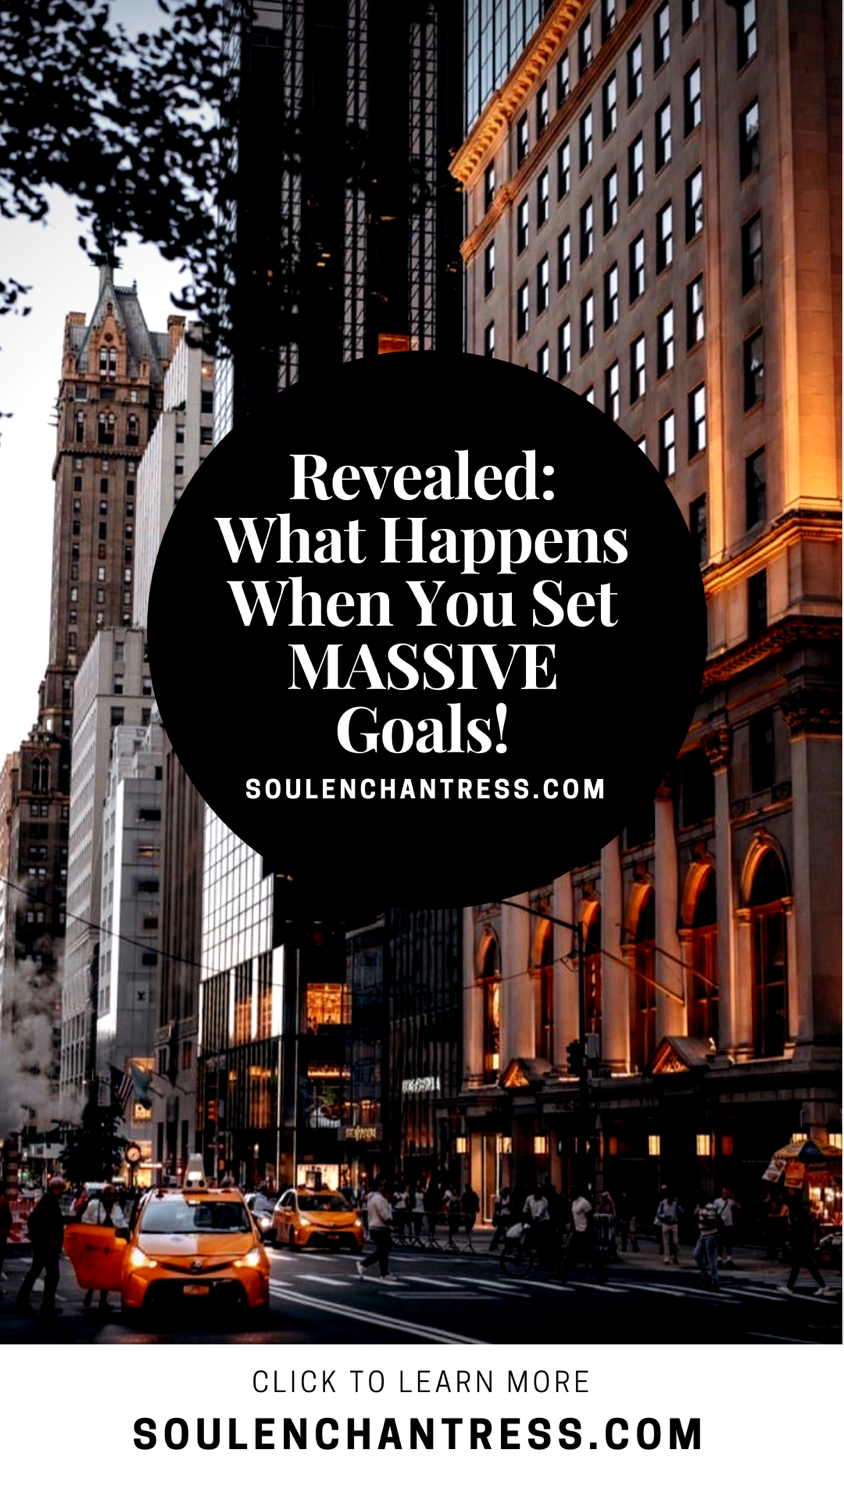 how to set huge goals, how to achieve goals easily, how to make life more fulfilling, men's health, how to increase sales, how to attract more clients, how to attract more customers , business wellness programs, soul enchantress,